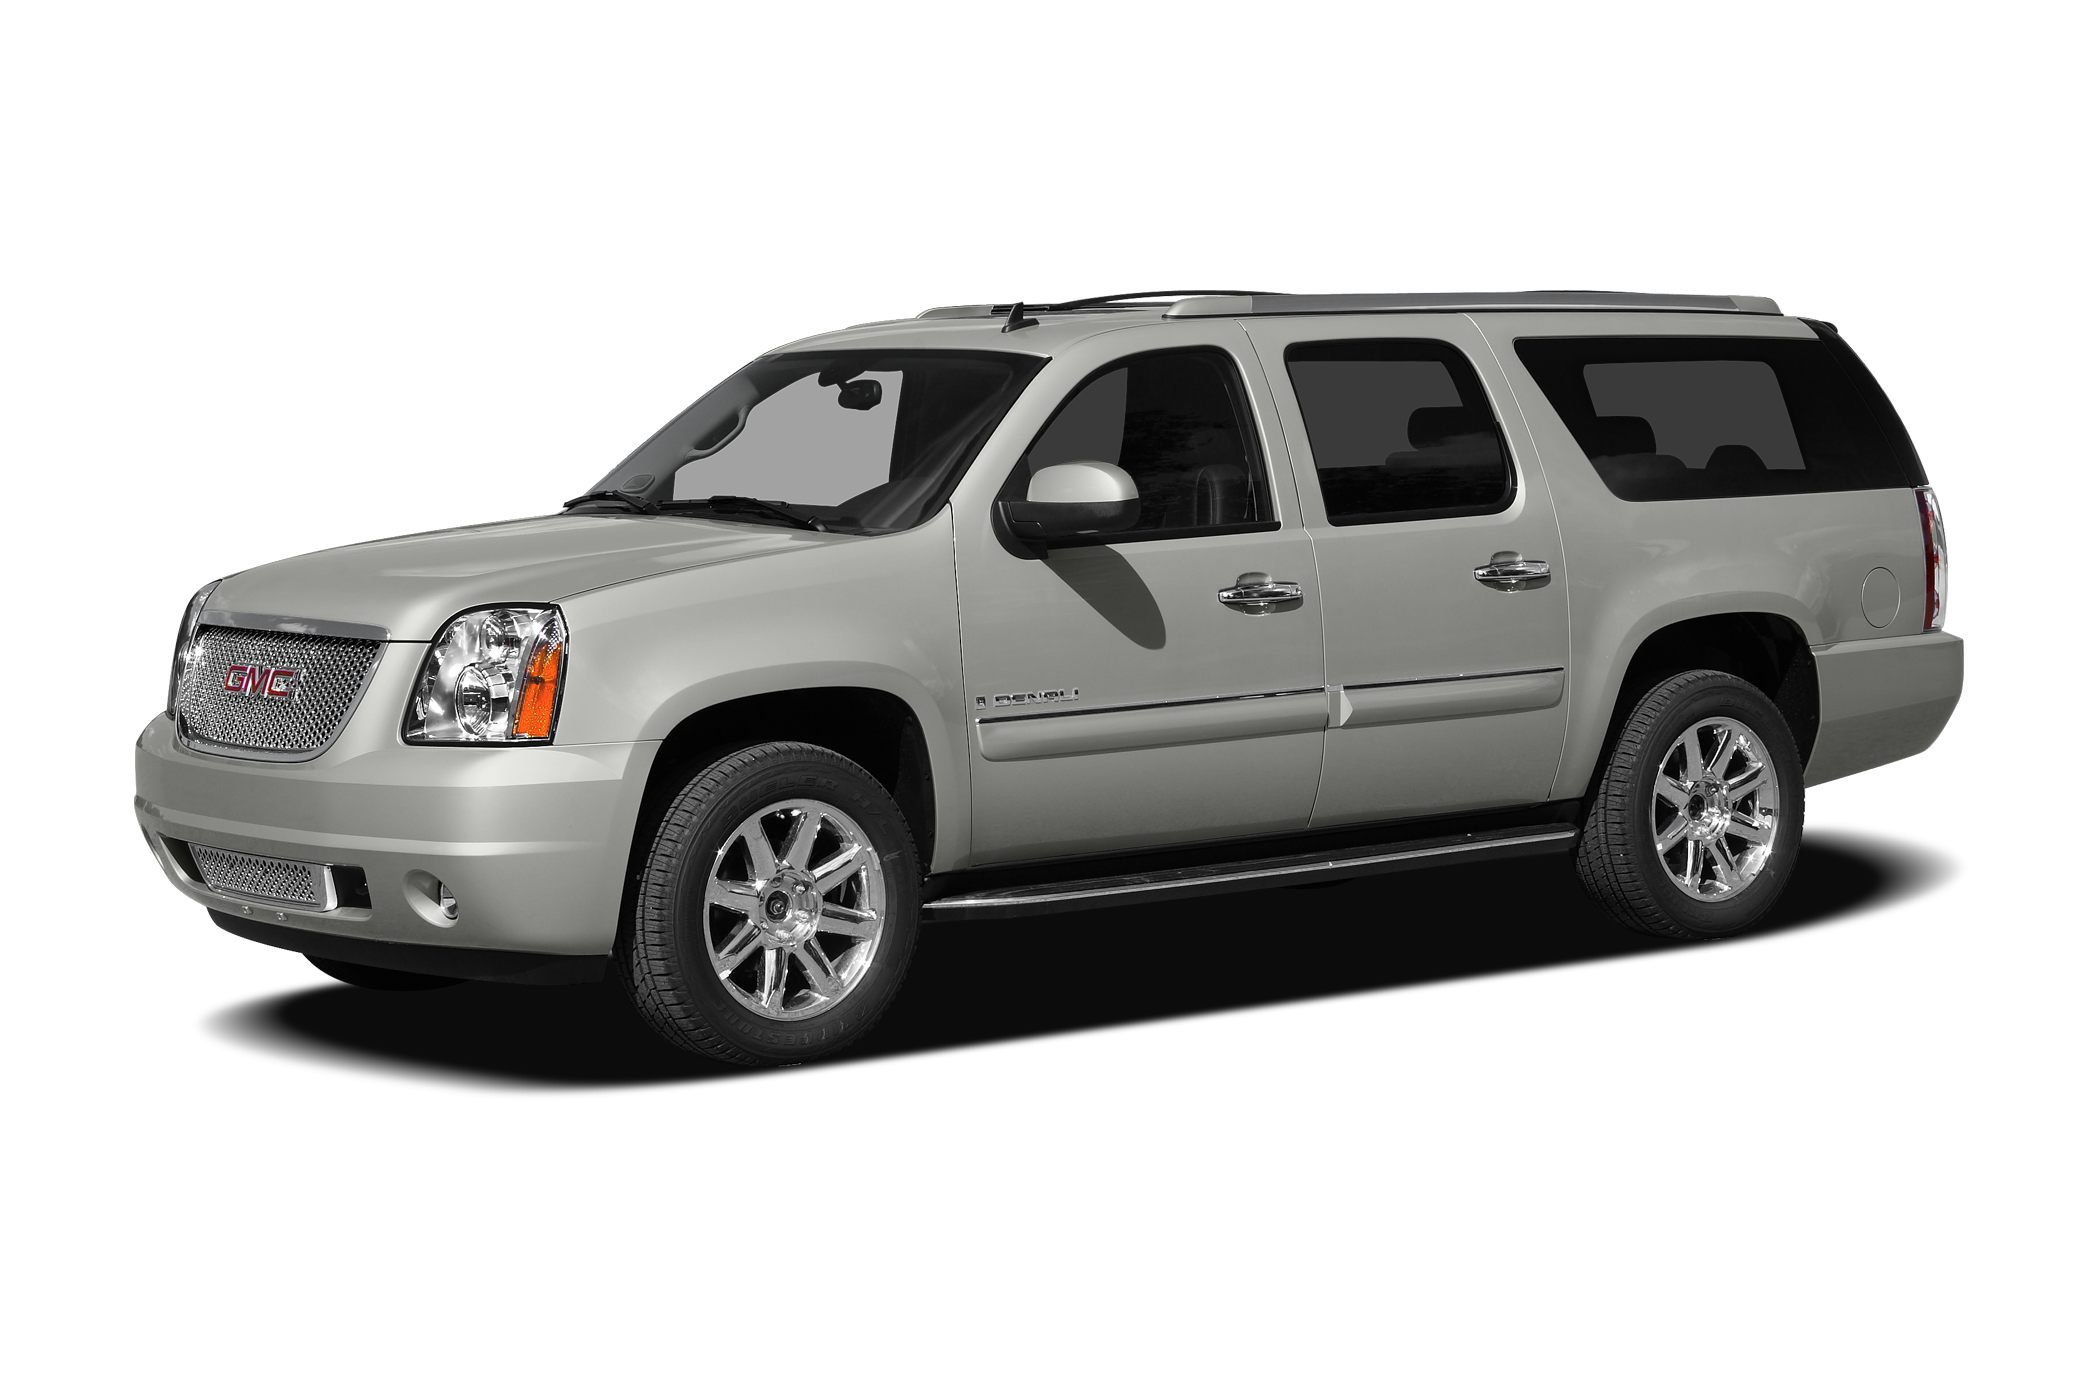 2008 GMC Yukon XL Denali SUV for sale in Denver for $23,888 with 108,524 miles.